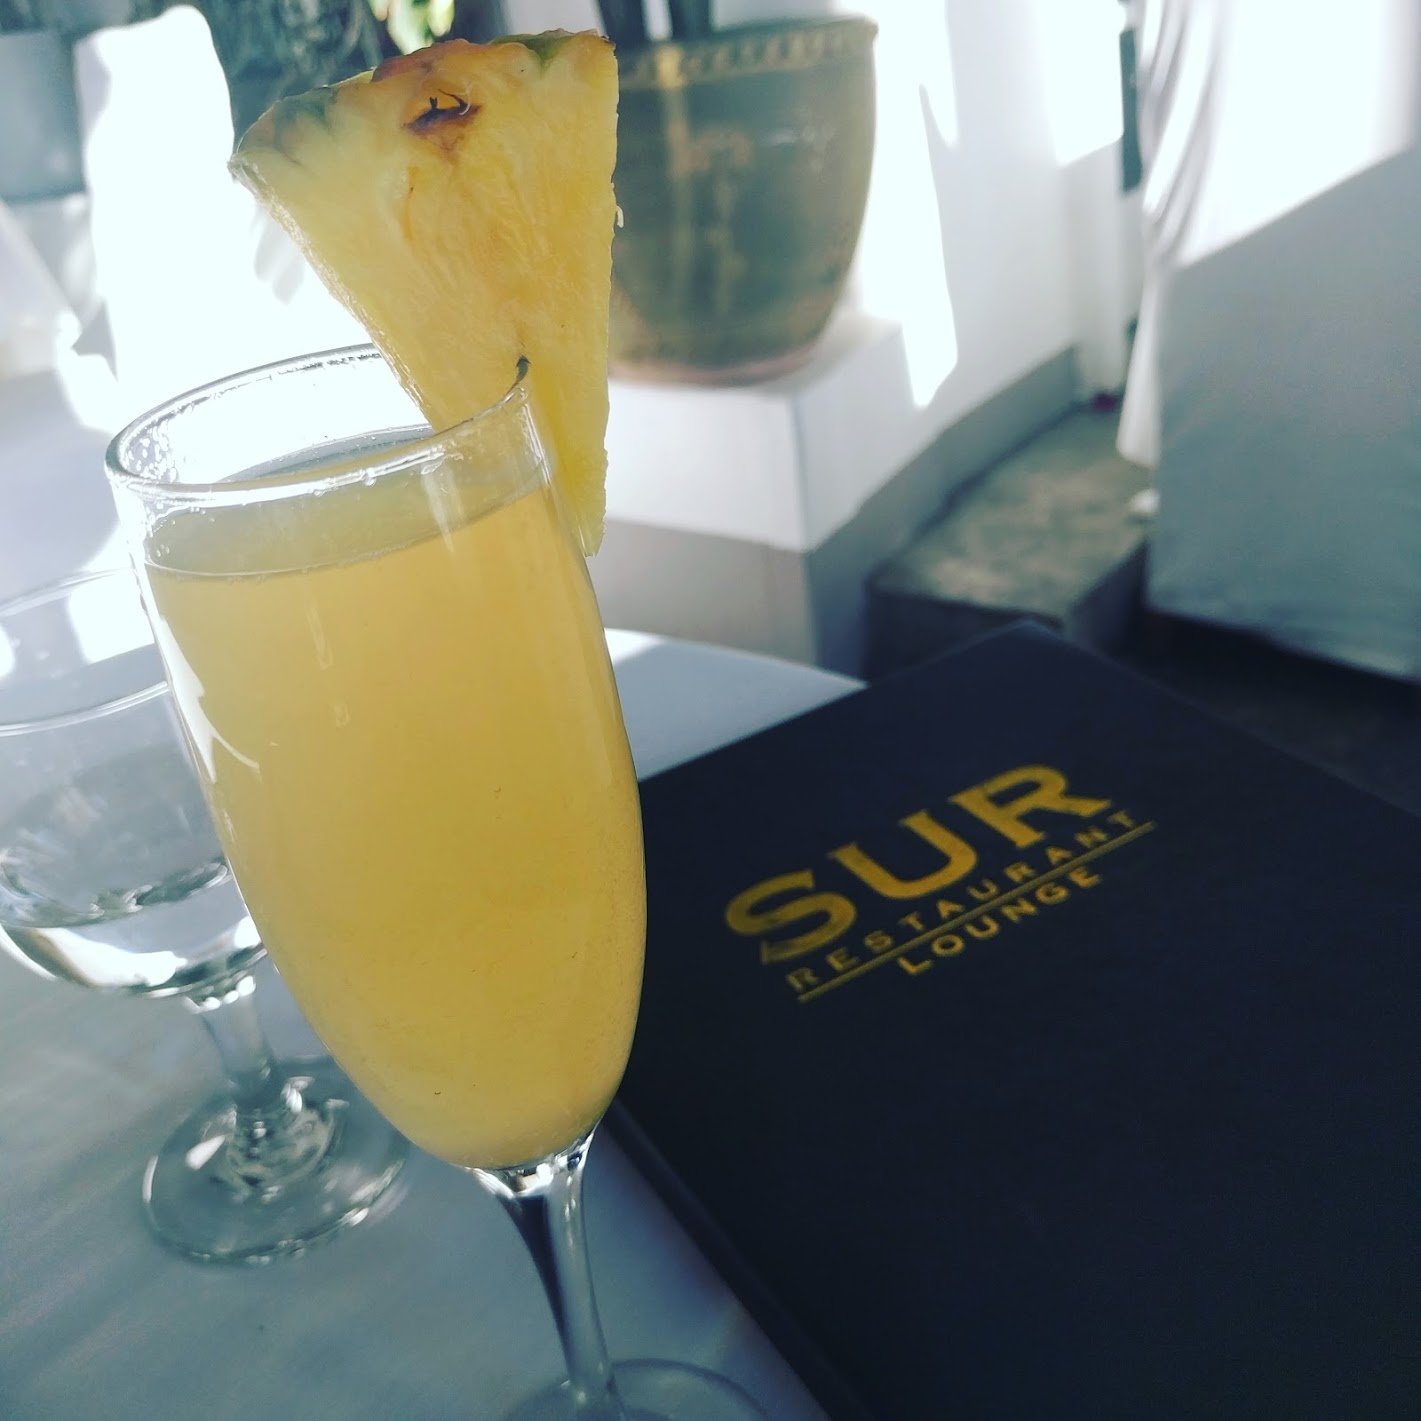 What it's like to eat at SUR, the real star of Vanderpump Rules.